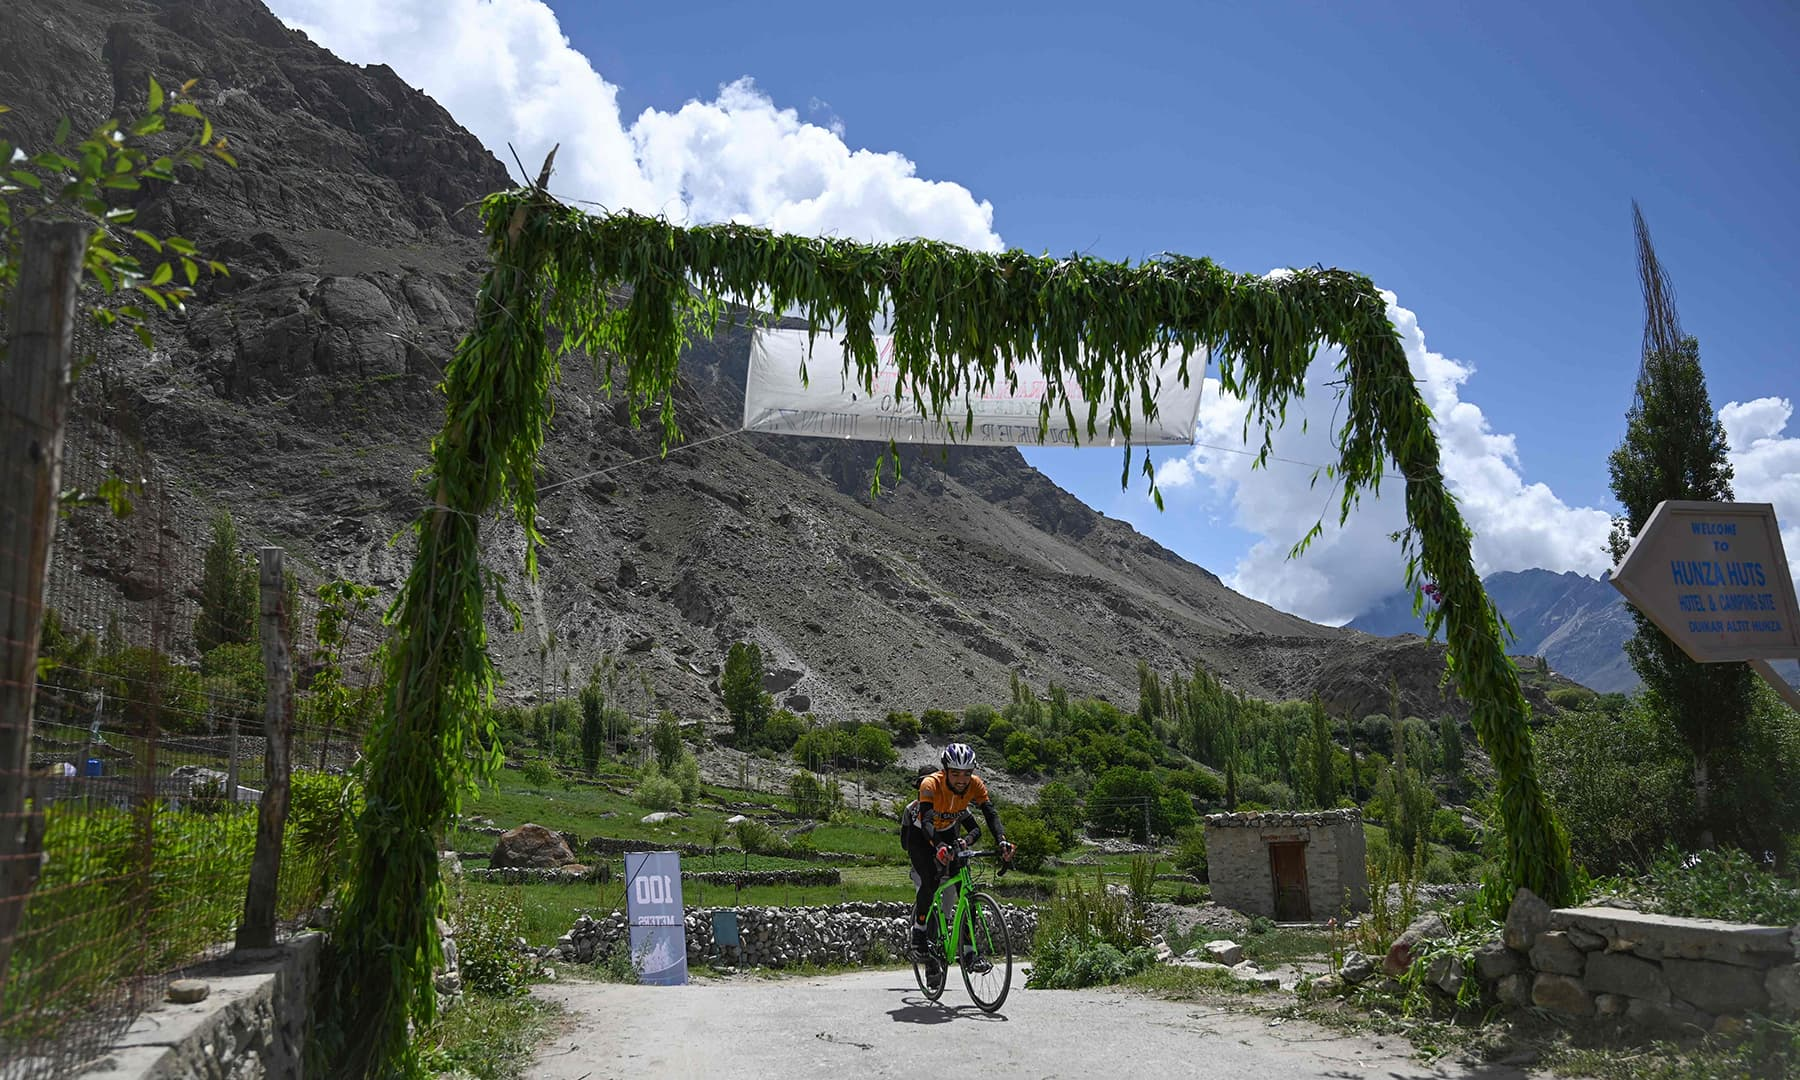 A Pakistani cyclist takes part in Tour de Khunjrab cycling race in Duikar Altit, Hunza Pakistan's northern region on June 28. — AFP